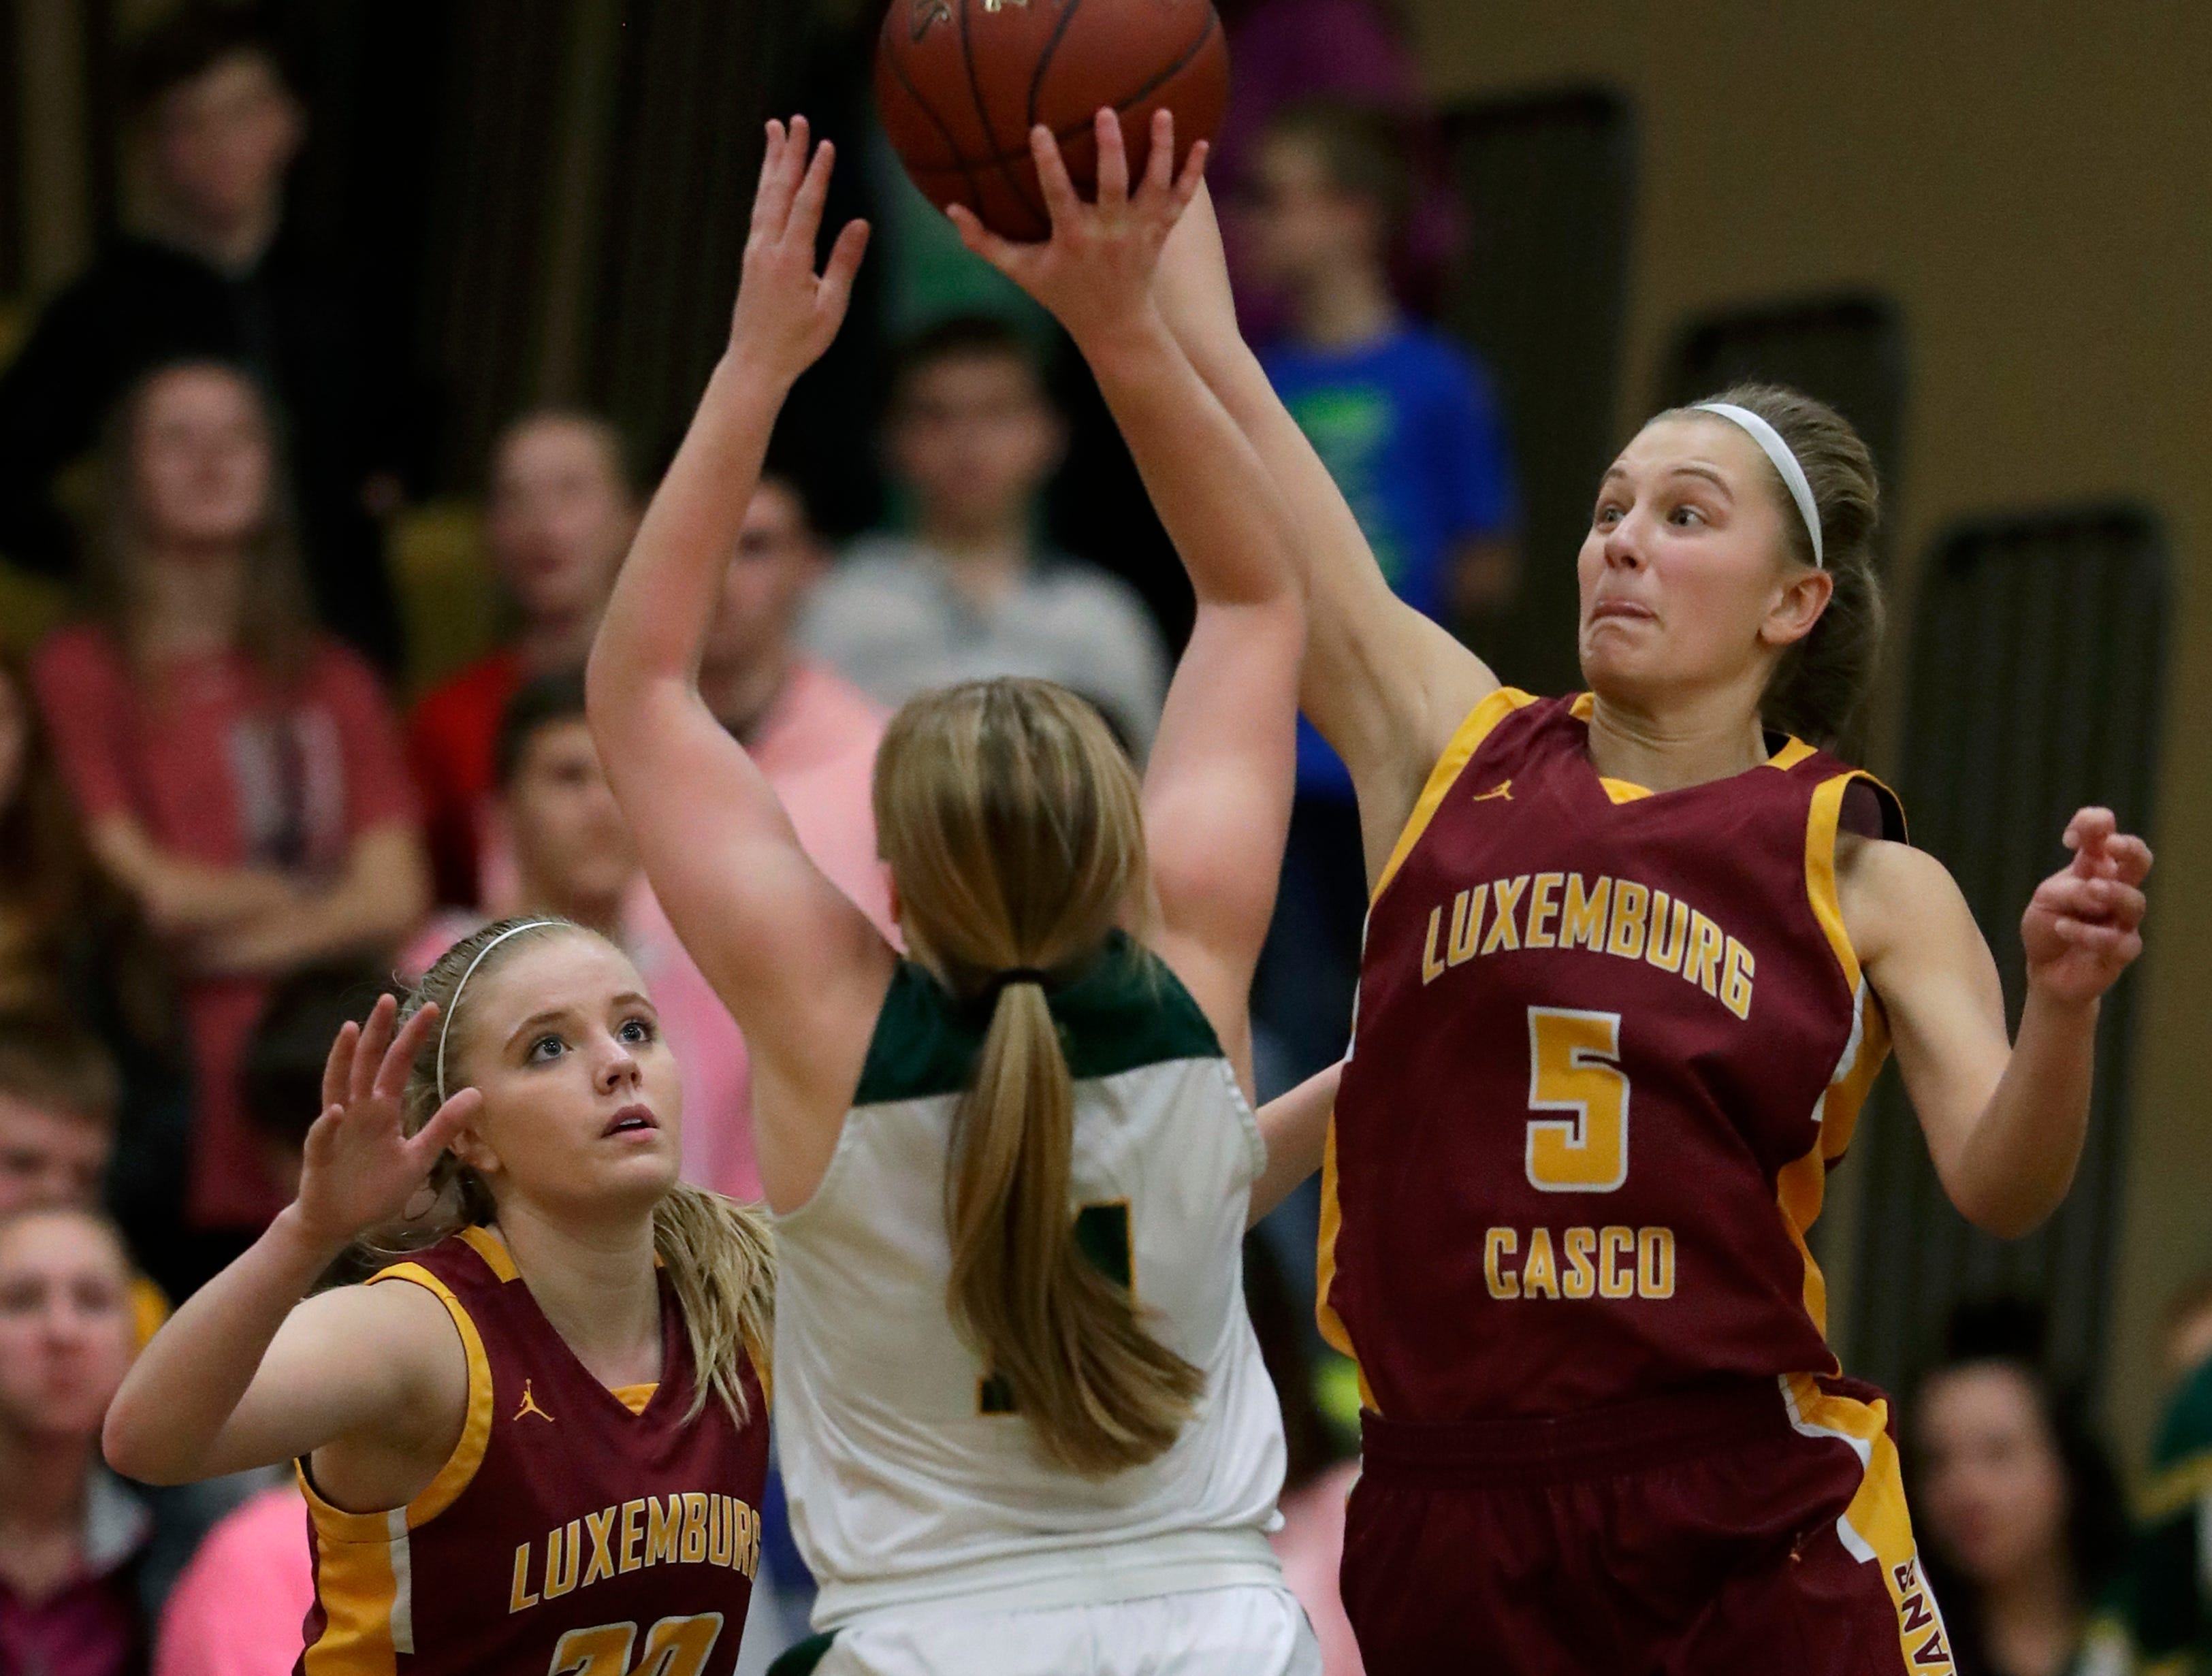 Luxemburg-Casco High School's Jenna Jorgensen (5) blocks a shot against Freedom High School's Carly Peters as Carli Kollross (20) helps on defense during their girls basketball game Thursday, January 24, 2019, in Freedom, Wis. 